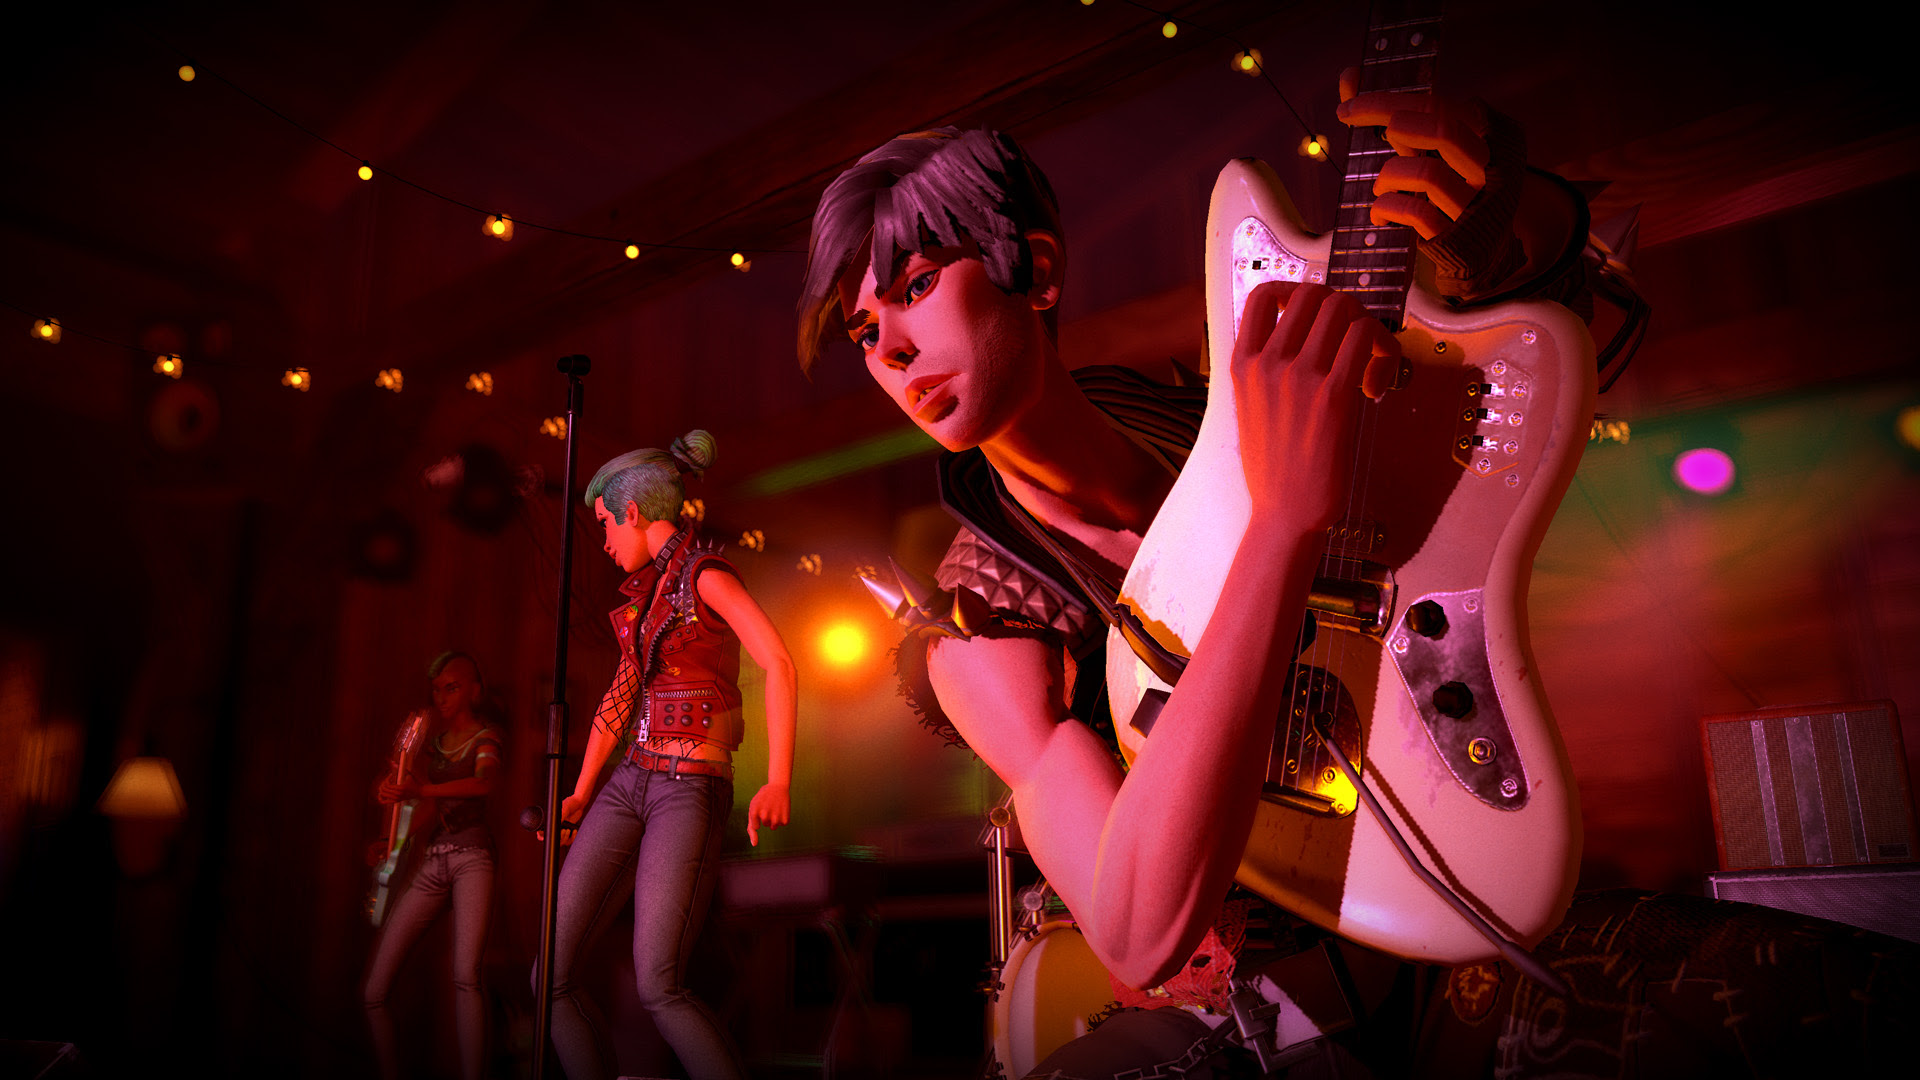 Rock Band has a new season pass subscription model for DLC screenshot